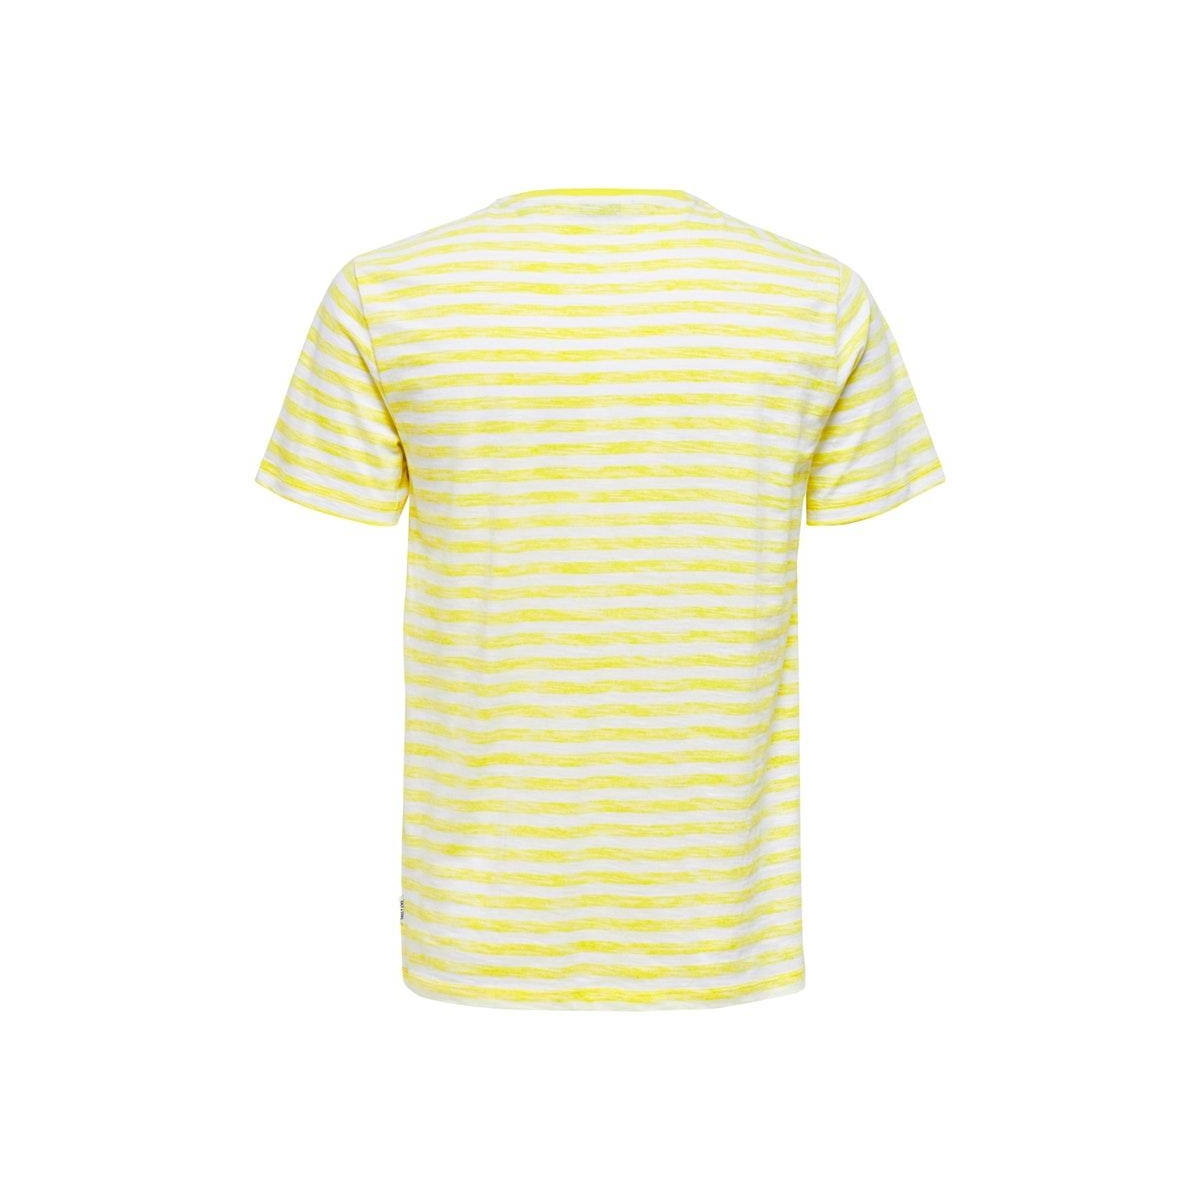 onsignite slim ss stripe tee 22016734 only & sons t-shirt white/limelight